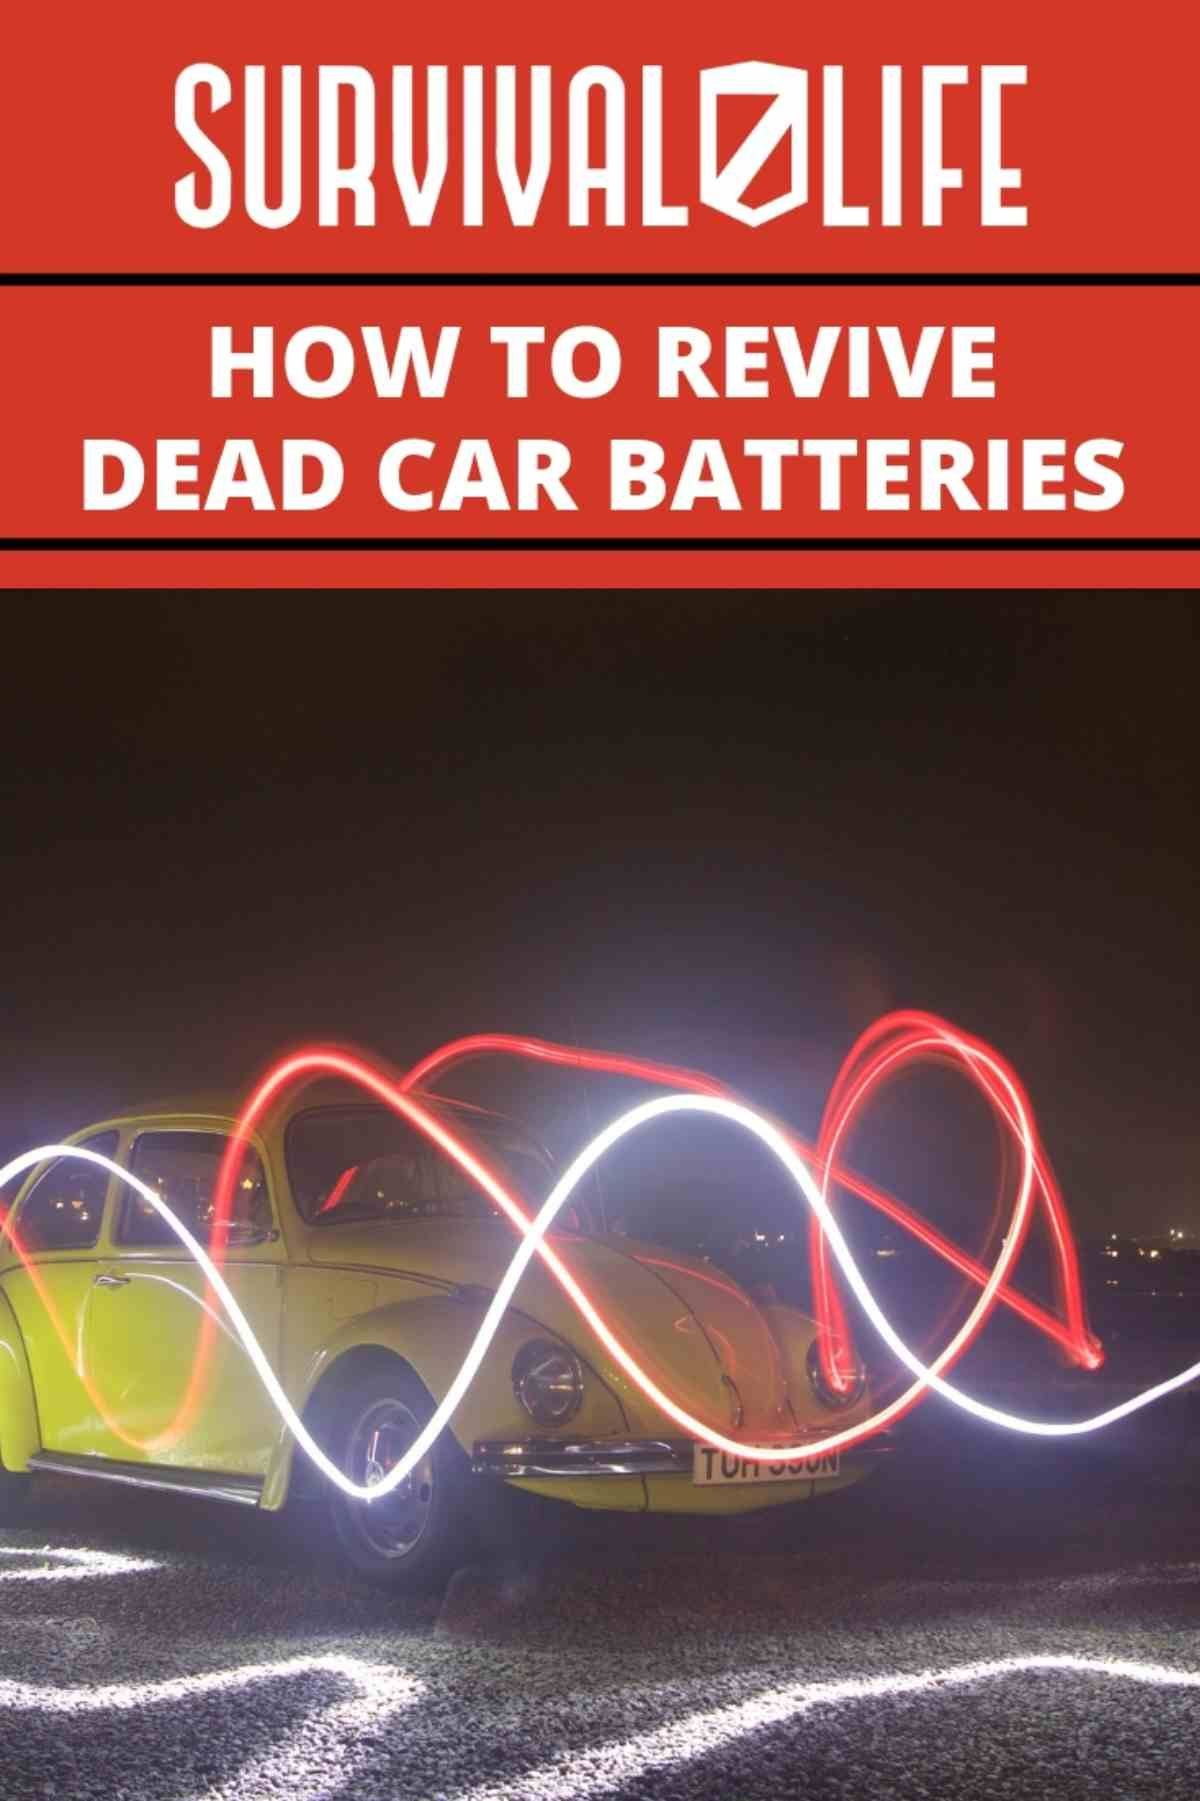 How To Revive Car Batteries: Don't Throw Dead Batteries Just